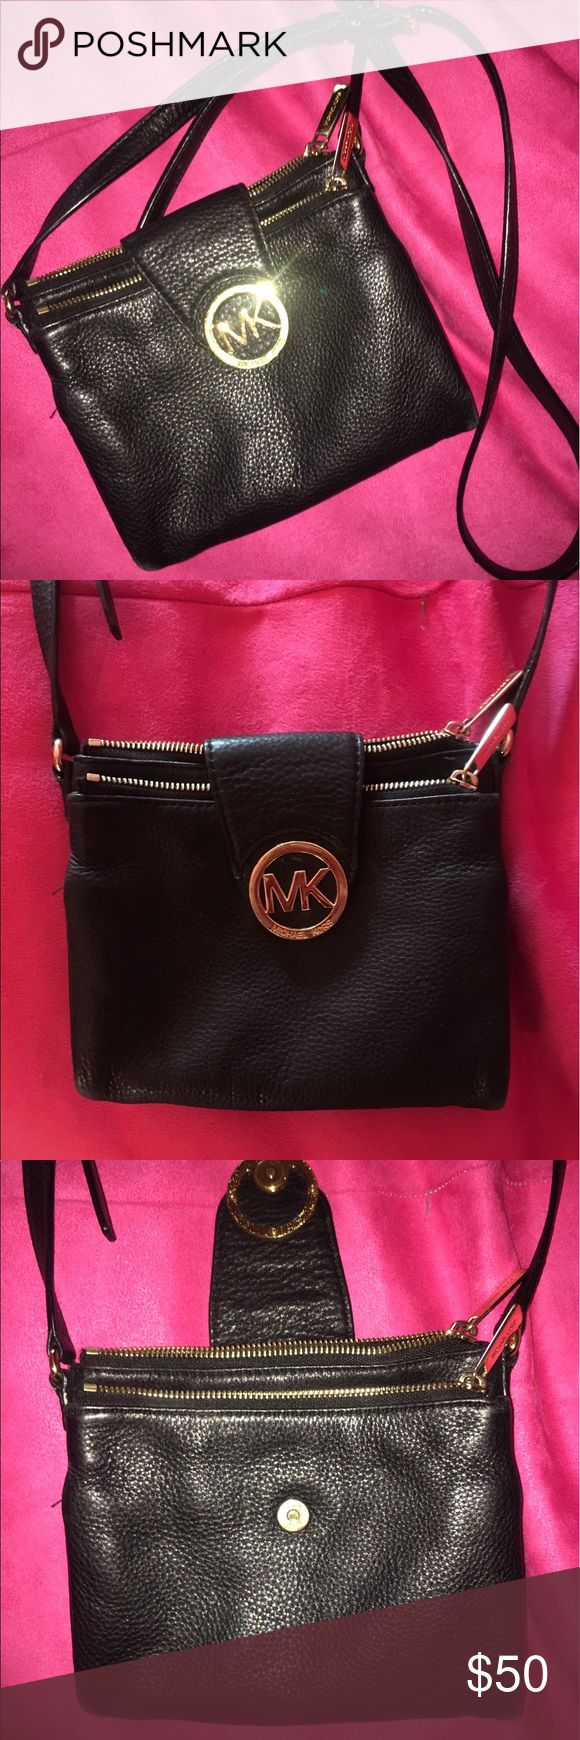 Black and Gold Michael Kors sling bag! This gold and black bag is perfect for a small going out purse!! It is clean and in great condition! The only flaw is the MK symbol is slightly scratched(last pic) !!! Open to offers 💖 Michael Kors Bags Crossbody Bags